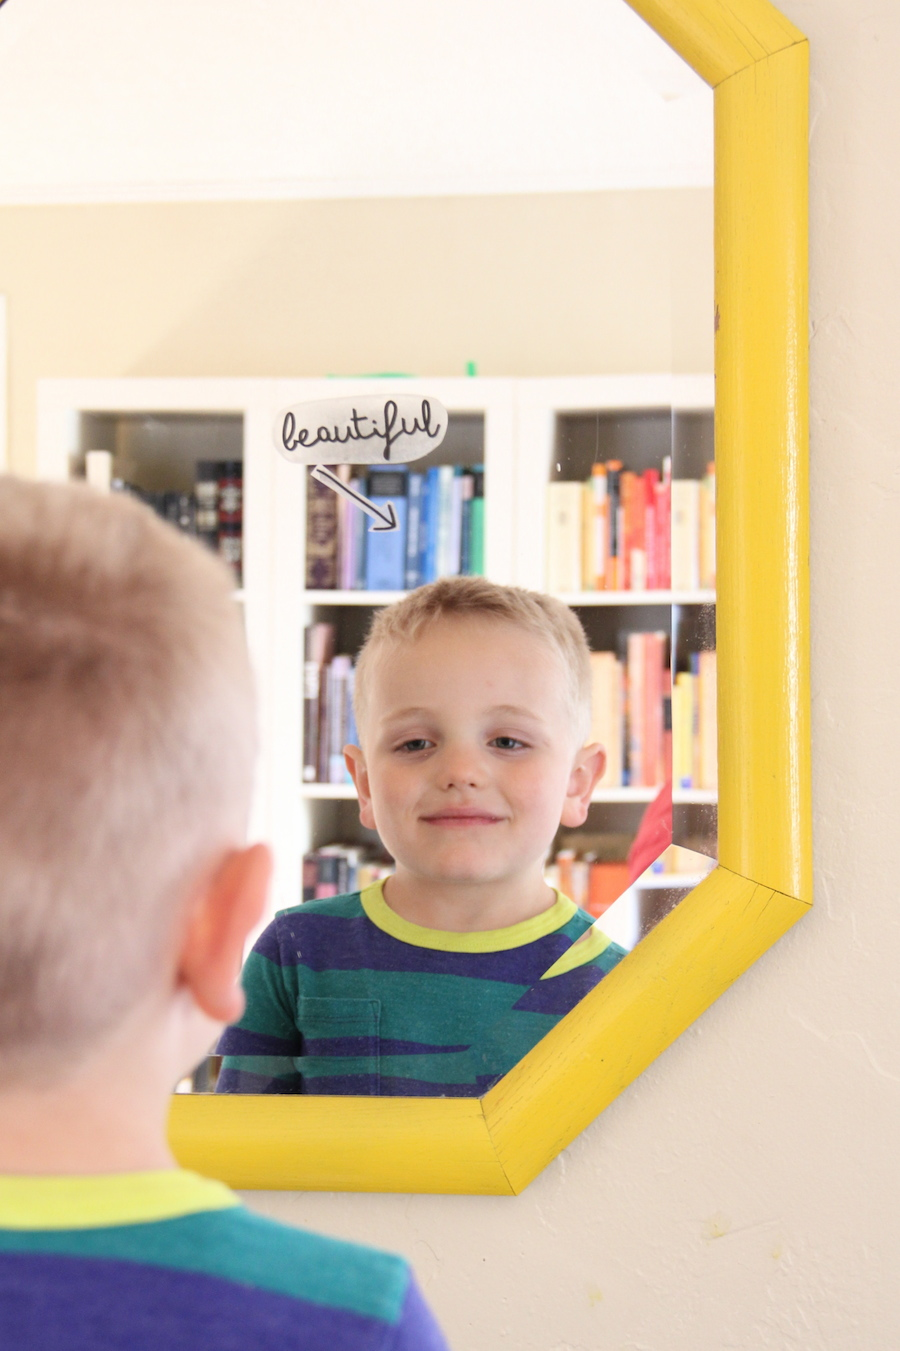 Printable mirror decals (click through for link)